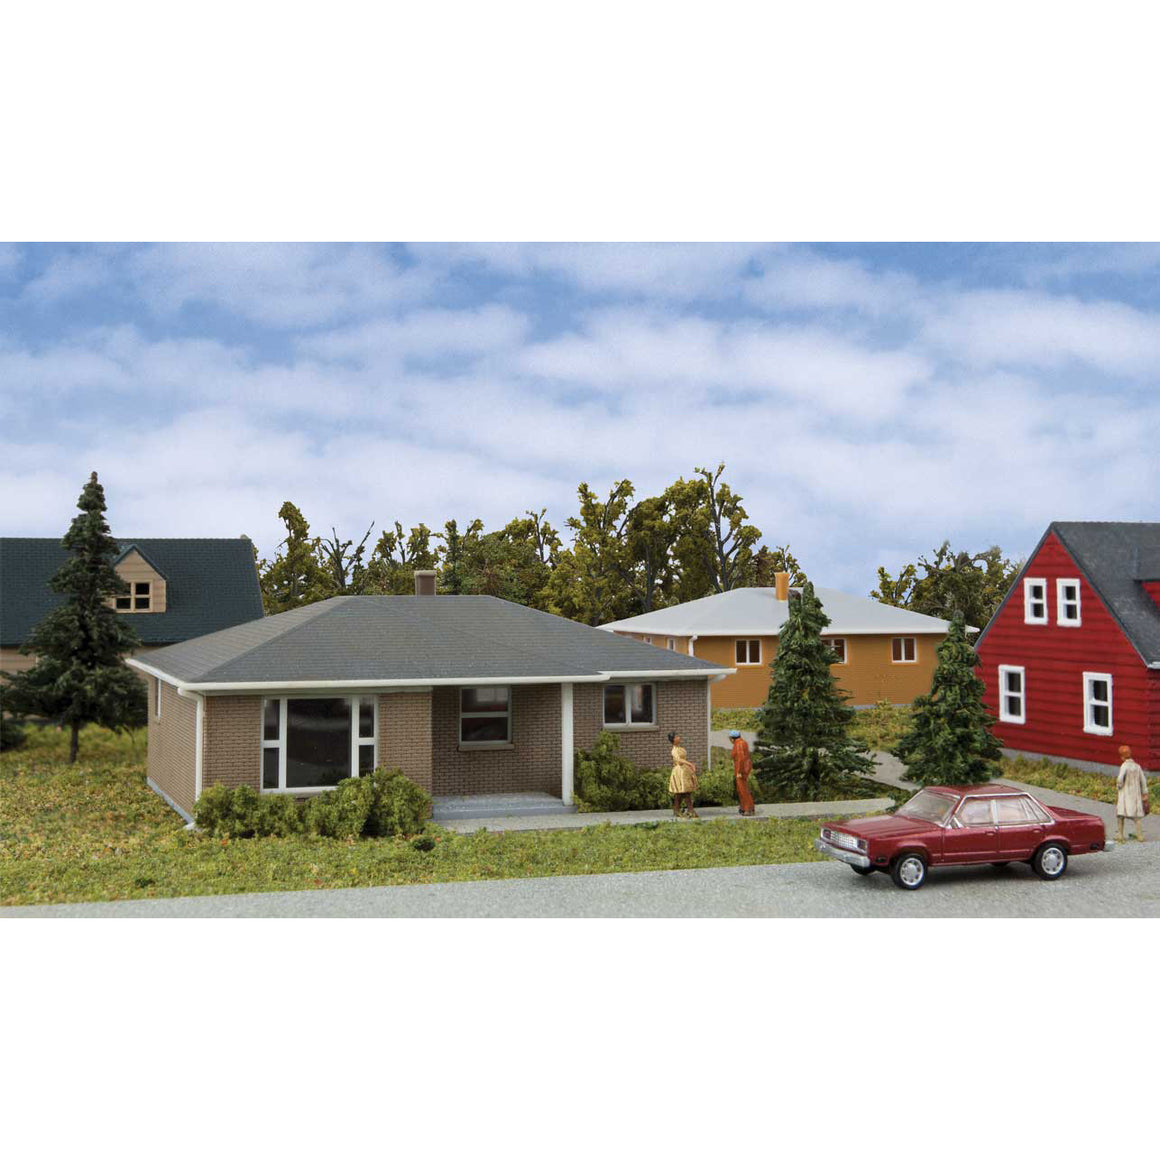 N Scale: Brick Ranch House - Kit